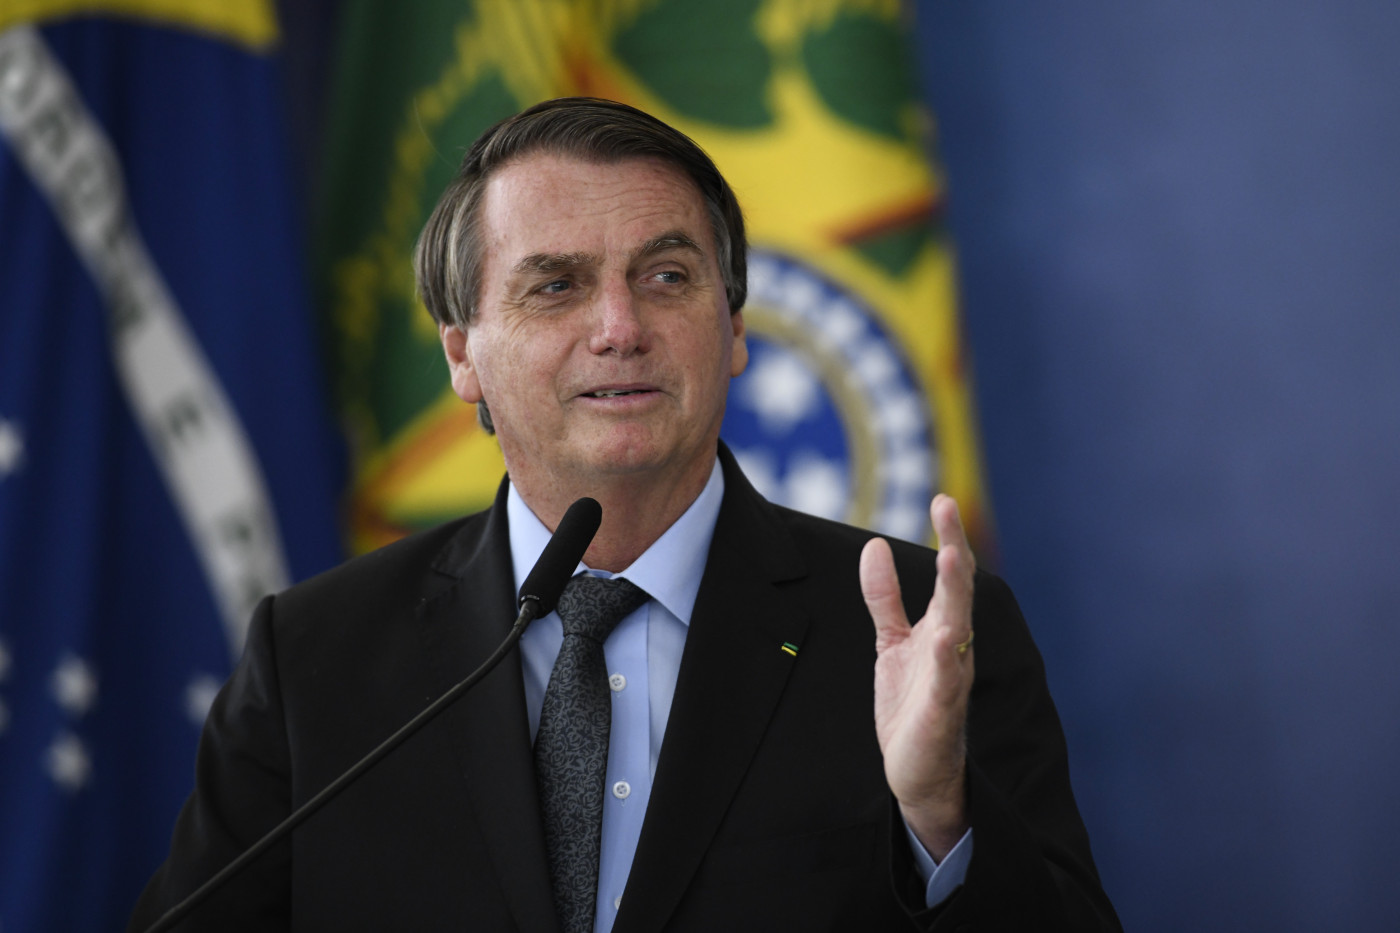 jair bolsonaro 2 SURVEY - 3 IN 1 - Do you think that the R $ 250 installments of the new emergency aid are sufficient? - Young pan